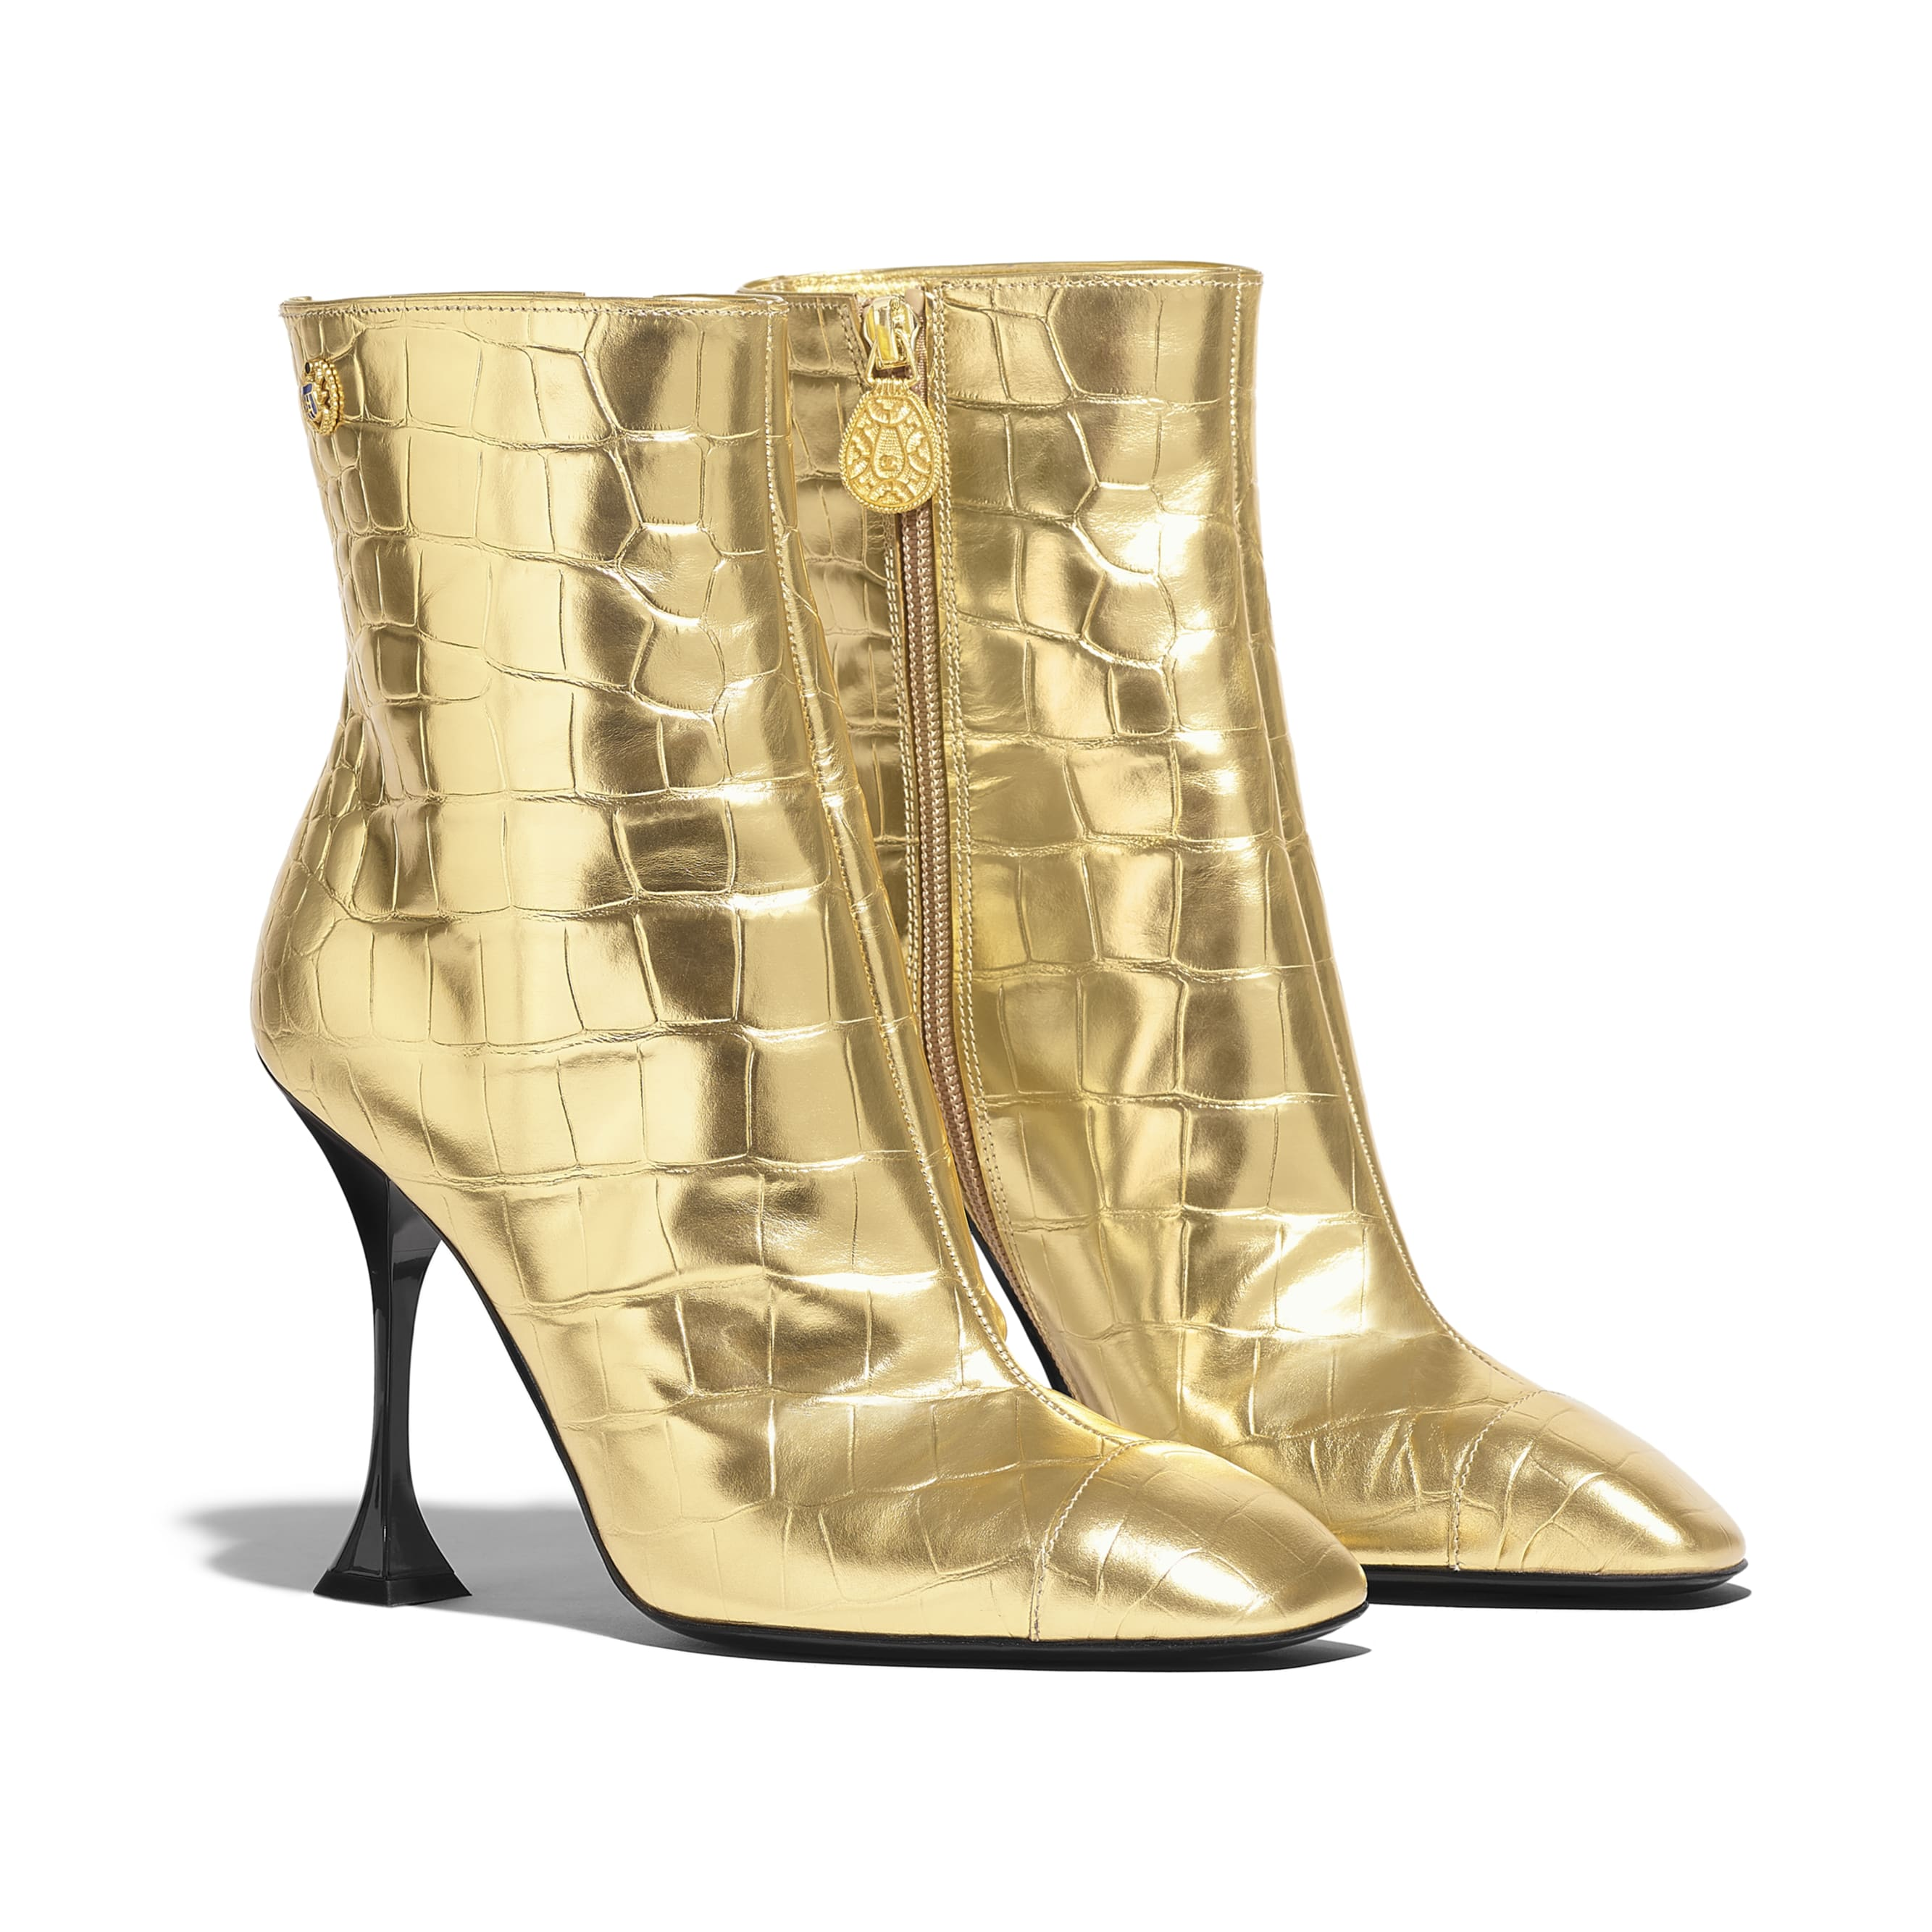 Ankle Boots - Gold - Crocodile Embossed Metallic Calfskin - Alternative view - see standard sized version